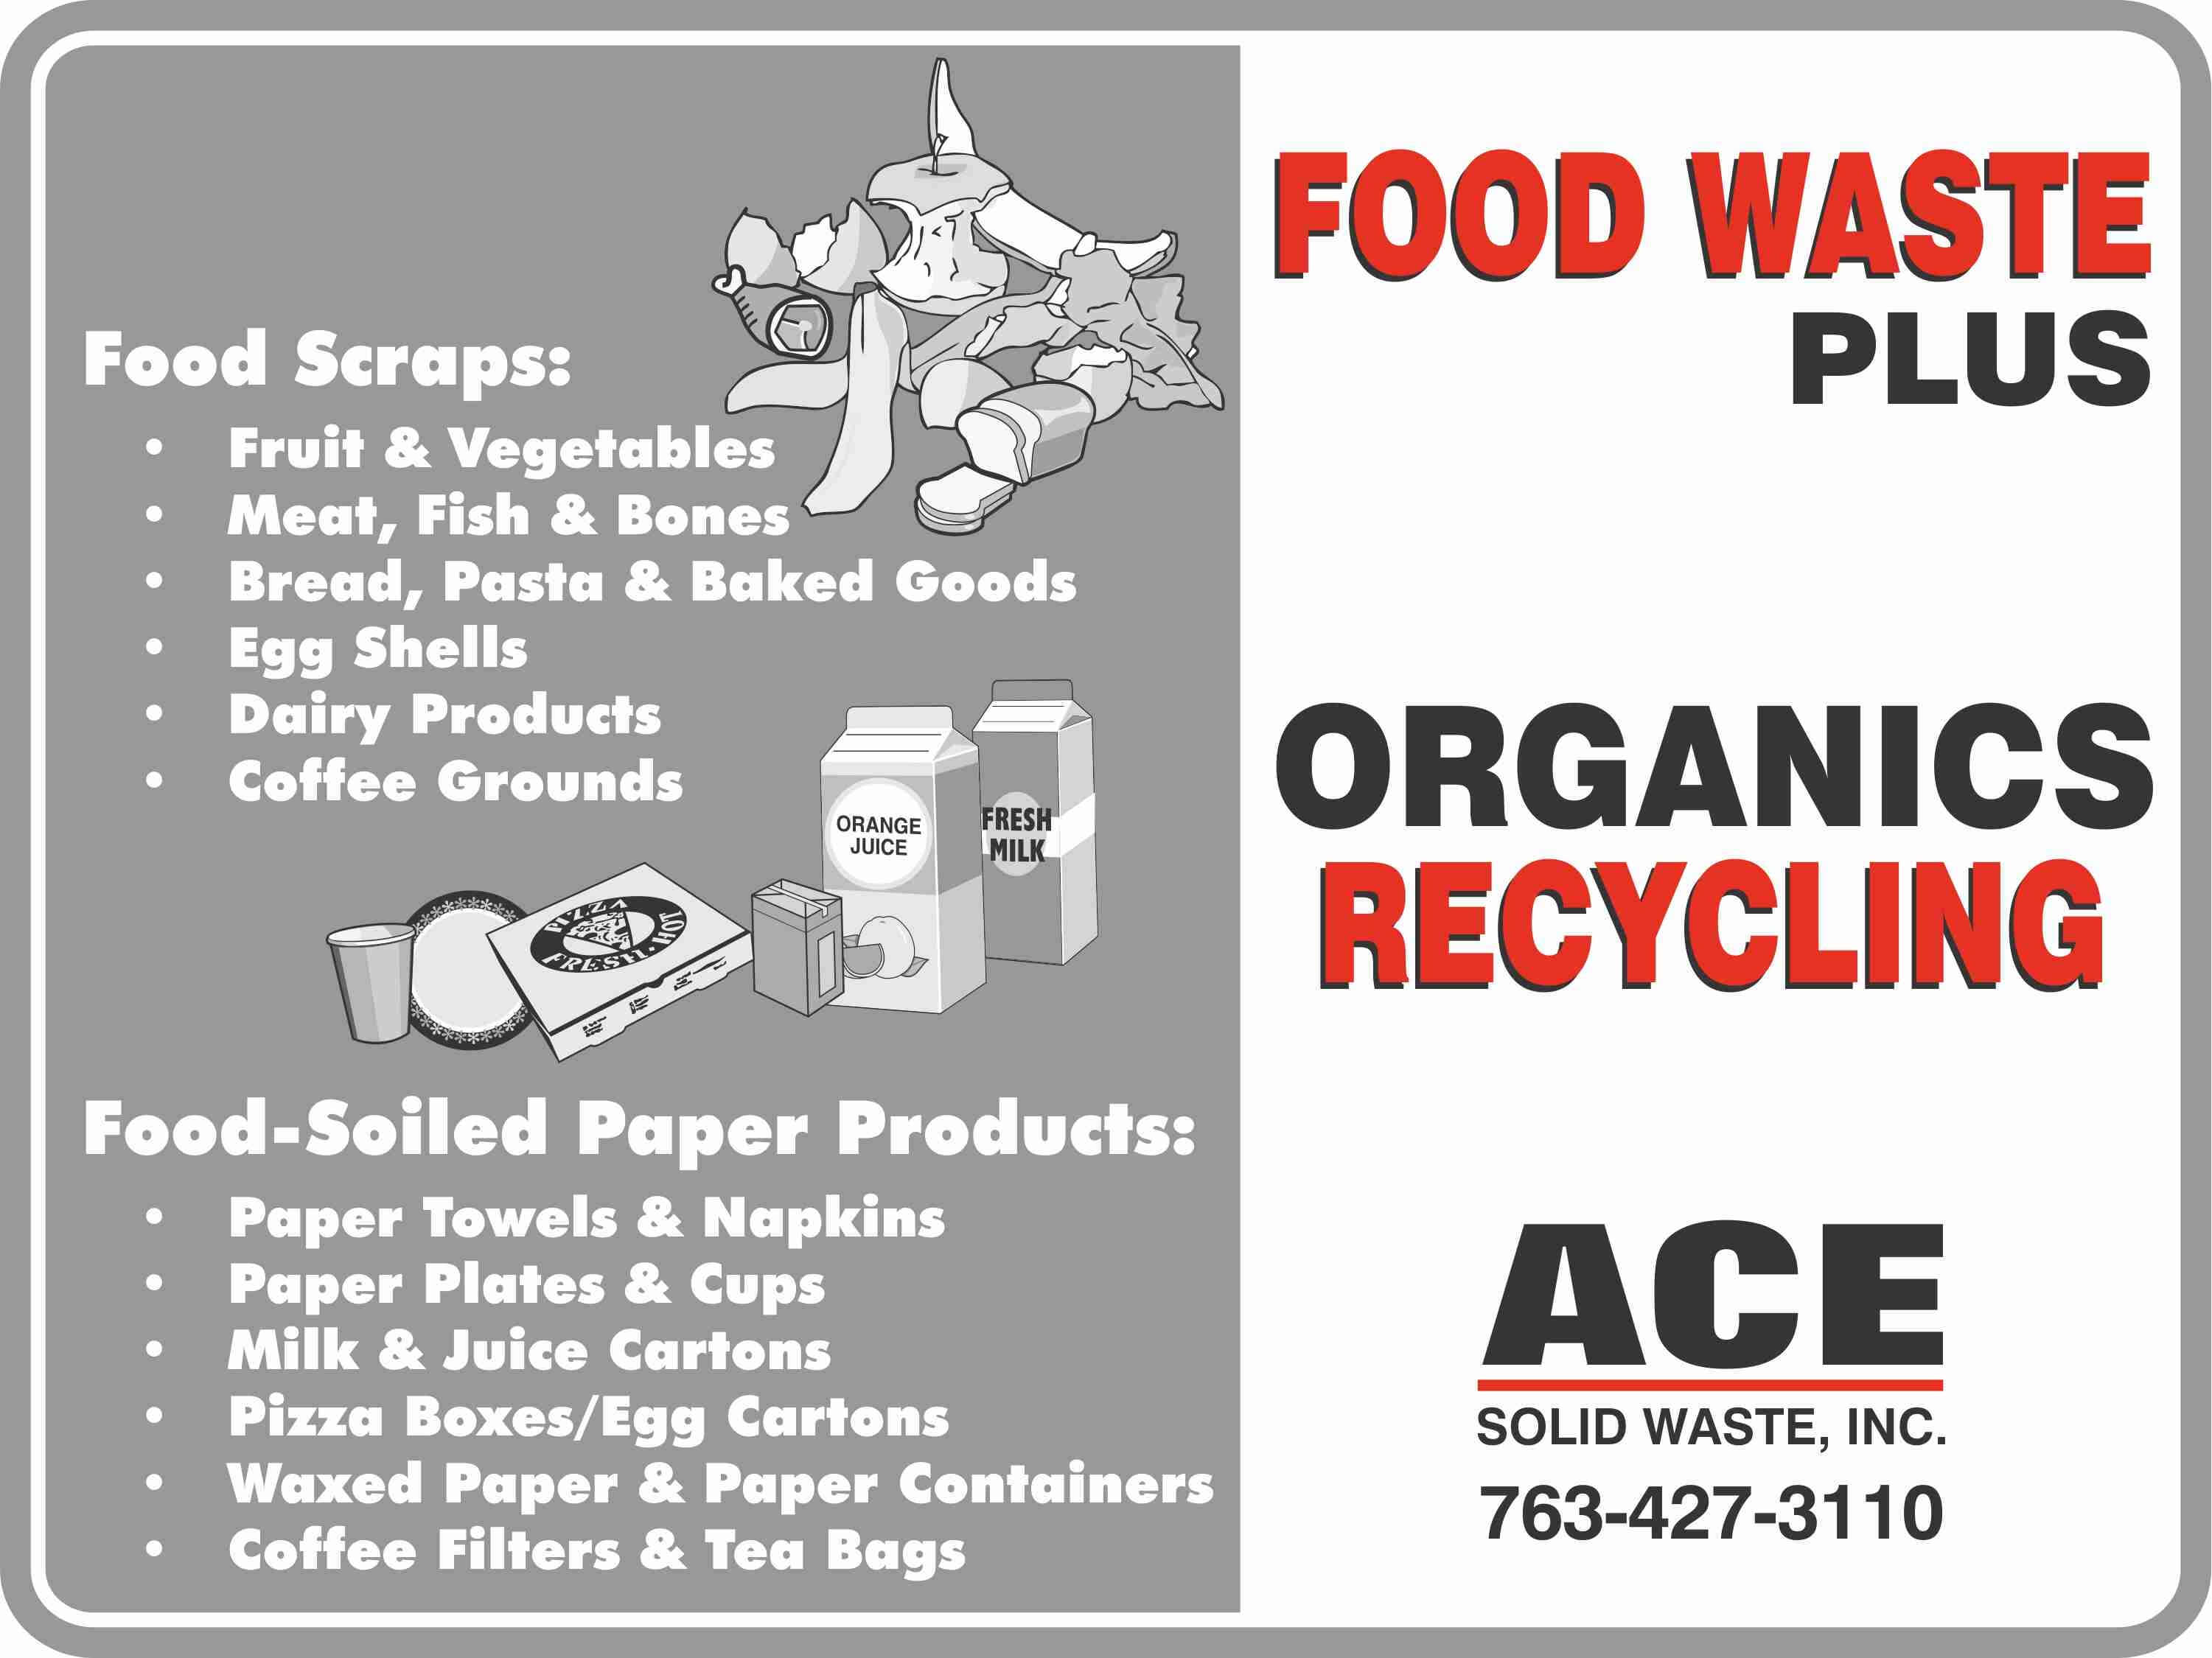 Food Waste Plus Organics Recycling service